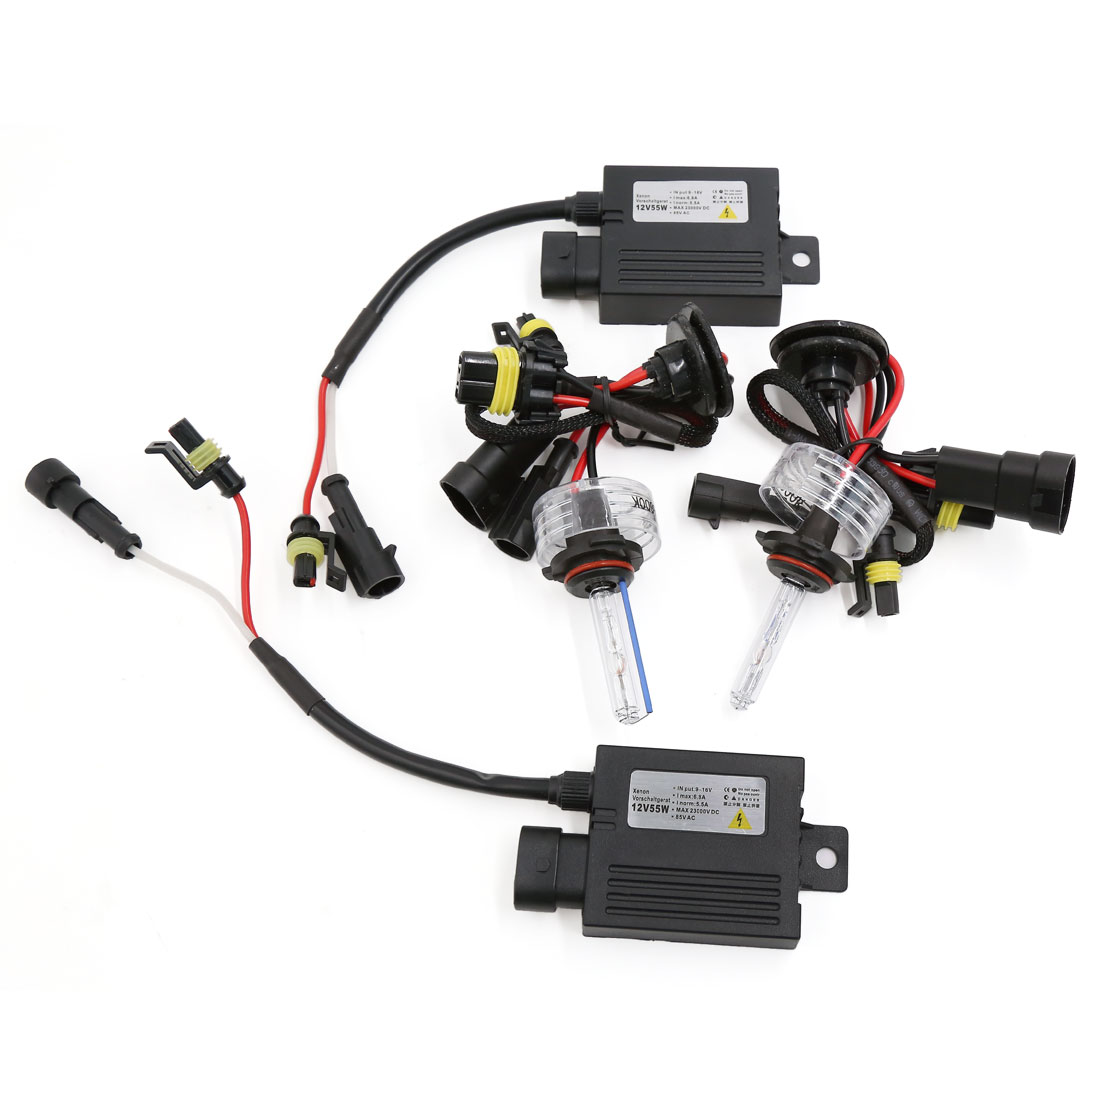 12V 55W 8000K 9006 HID Xenon Light Bulb Headlight Slim Ballast Conversion Kit